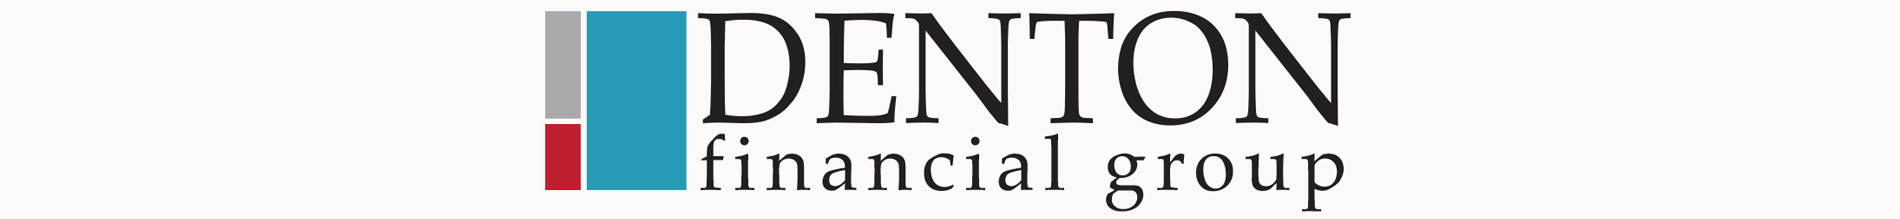 Denton Financial Group